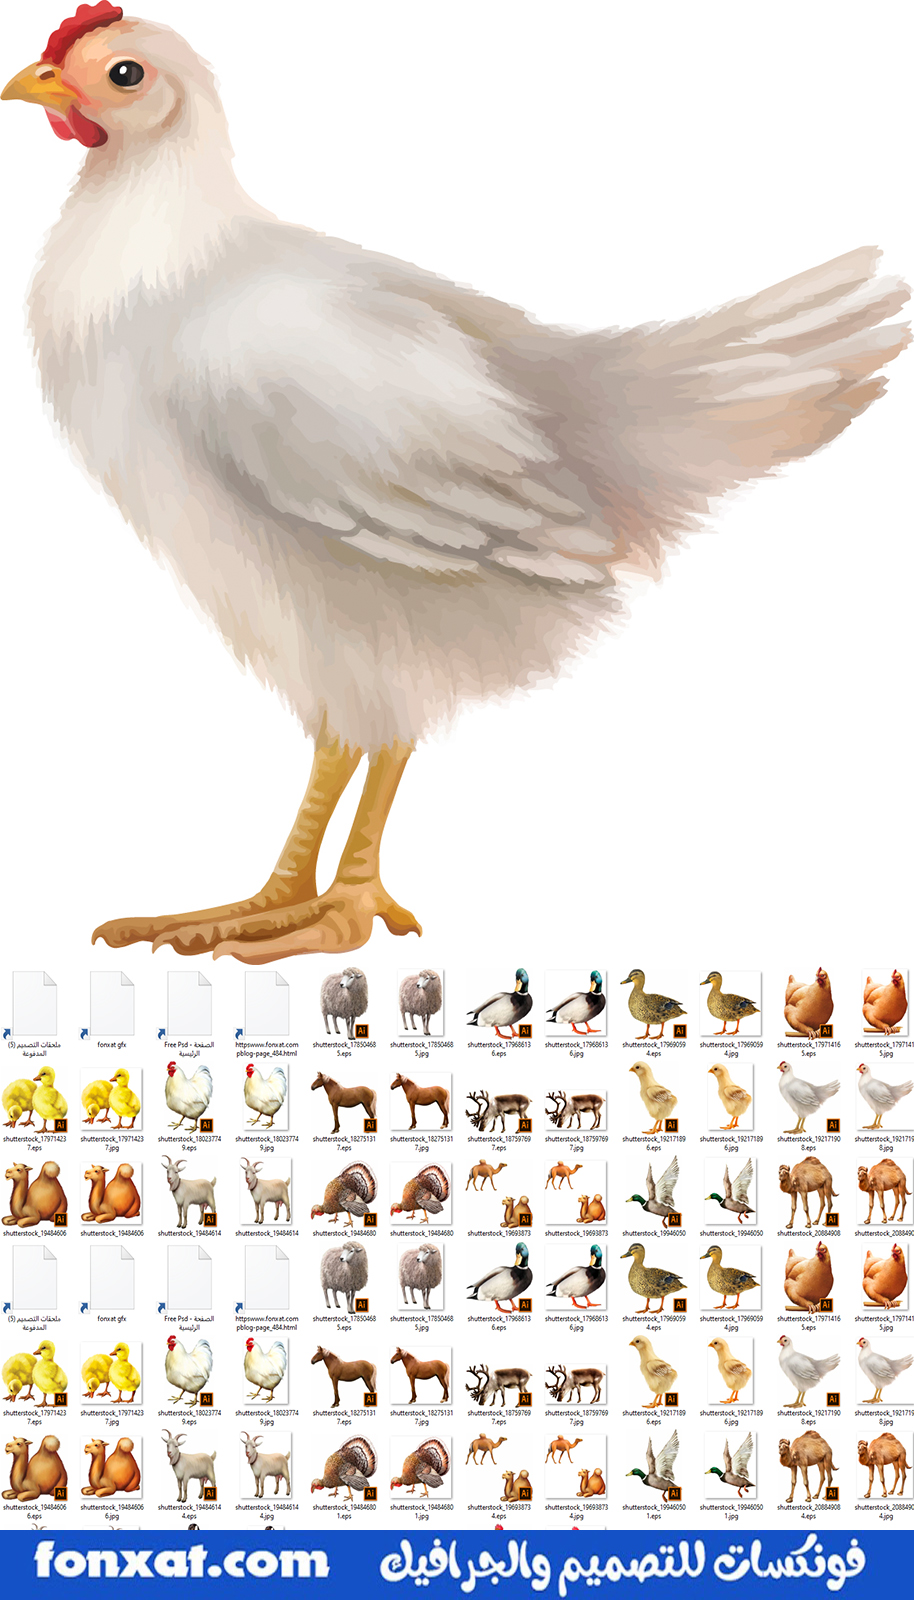 Download pictures of birds and animal farms of the highest quality